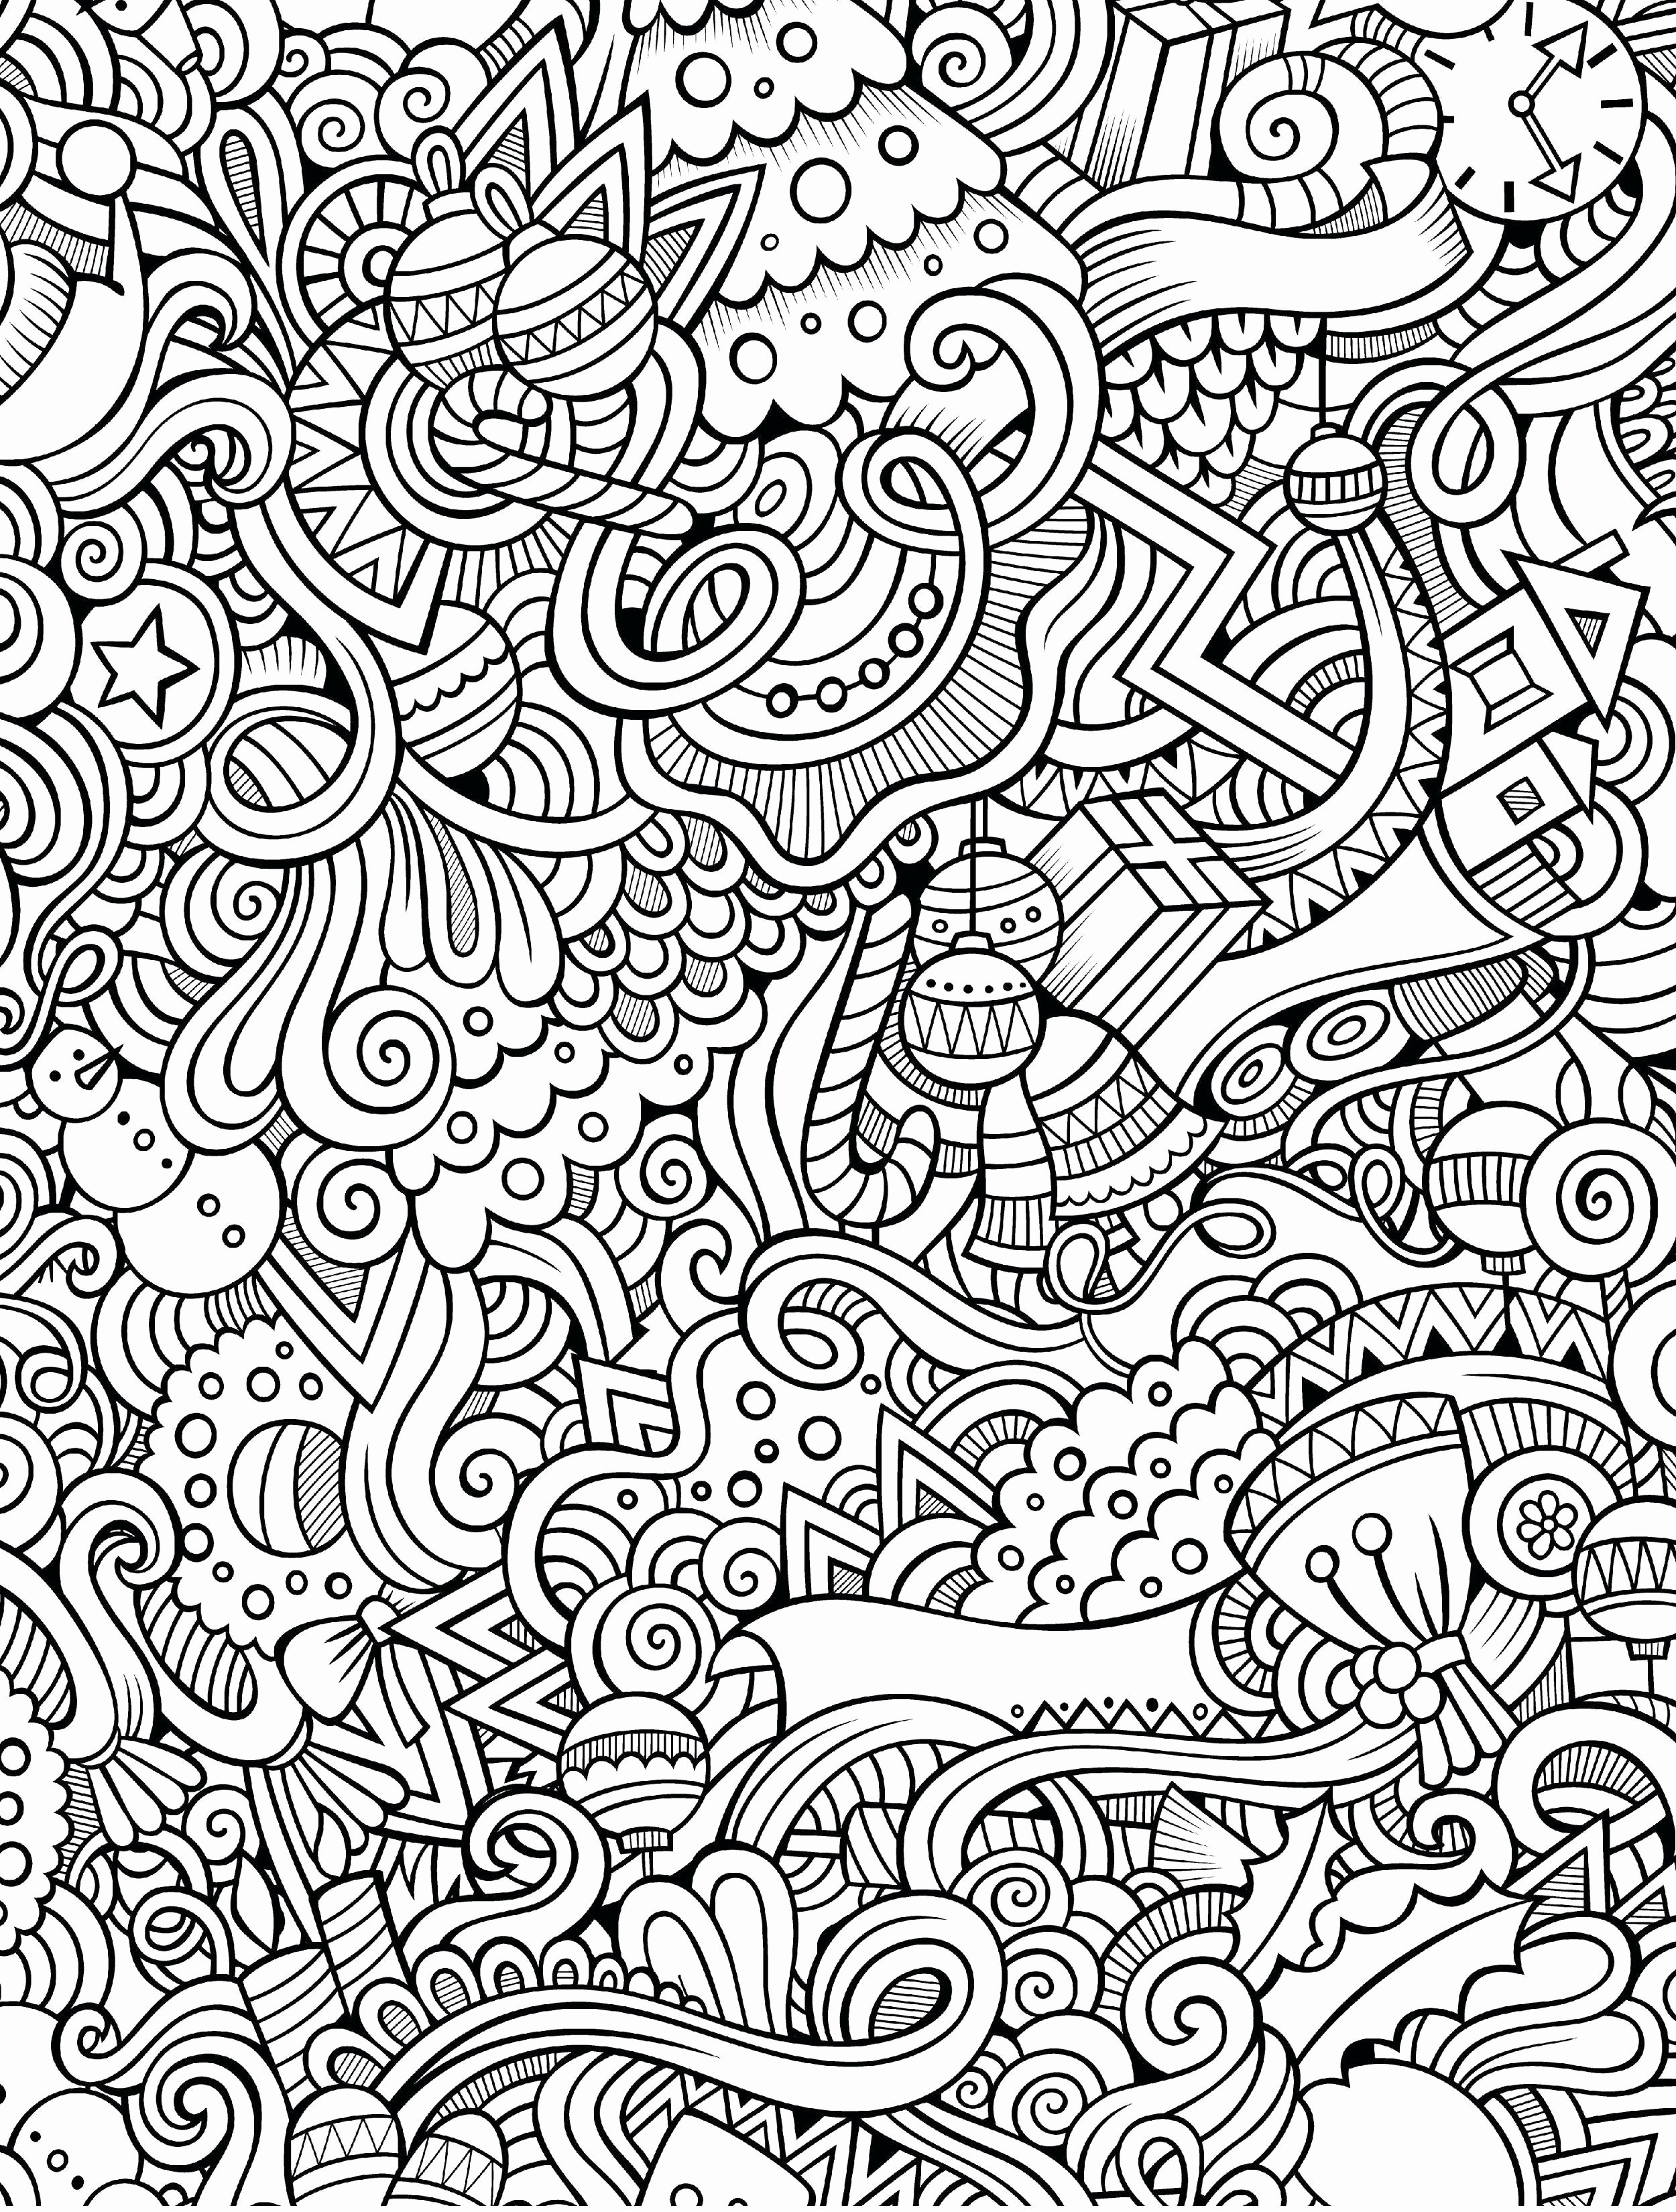 Celtic Color Pages - Celtic Coloring New Gallery Inspirational Free - Free Printable Hard Coloring Pages For Adults